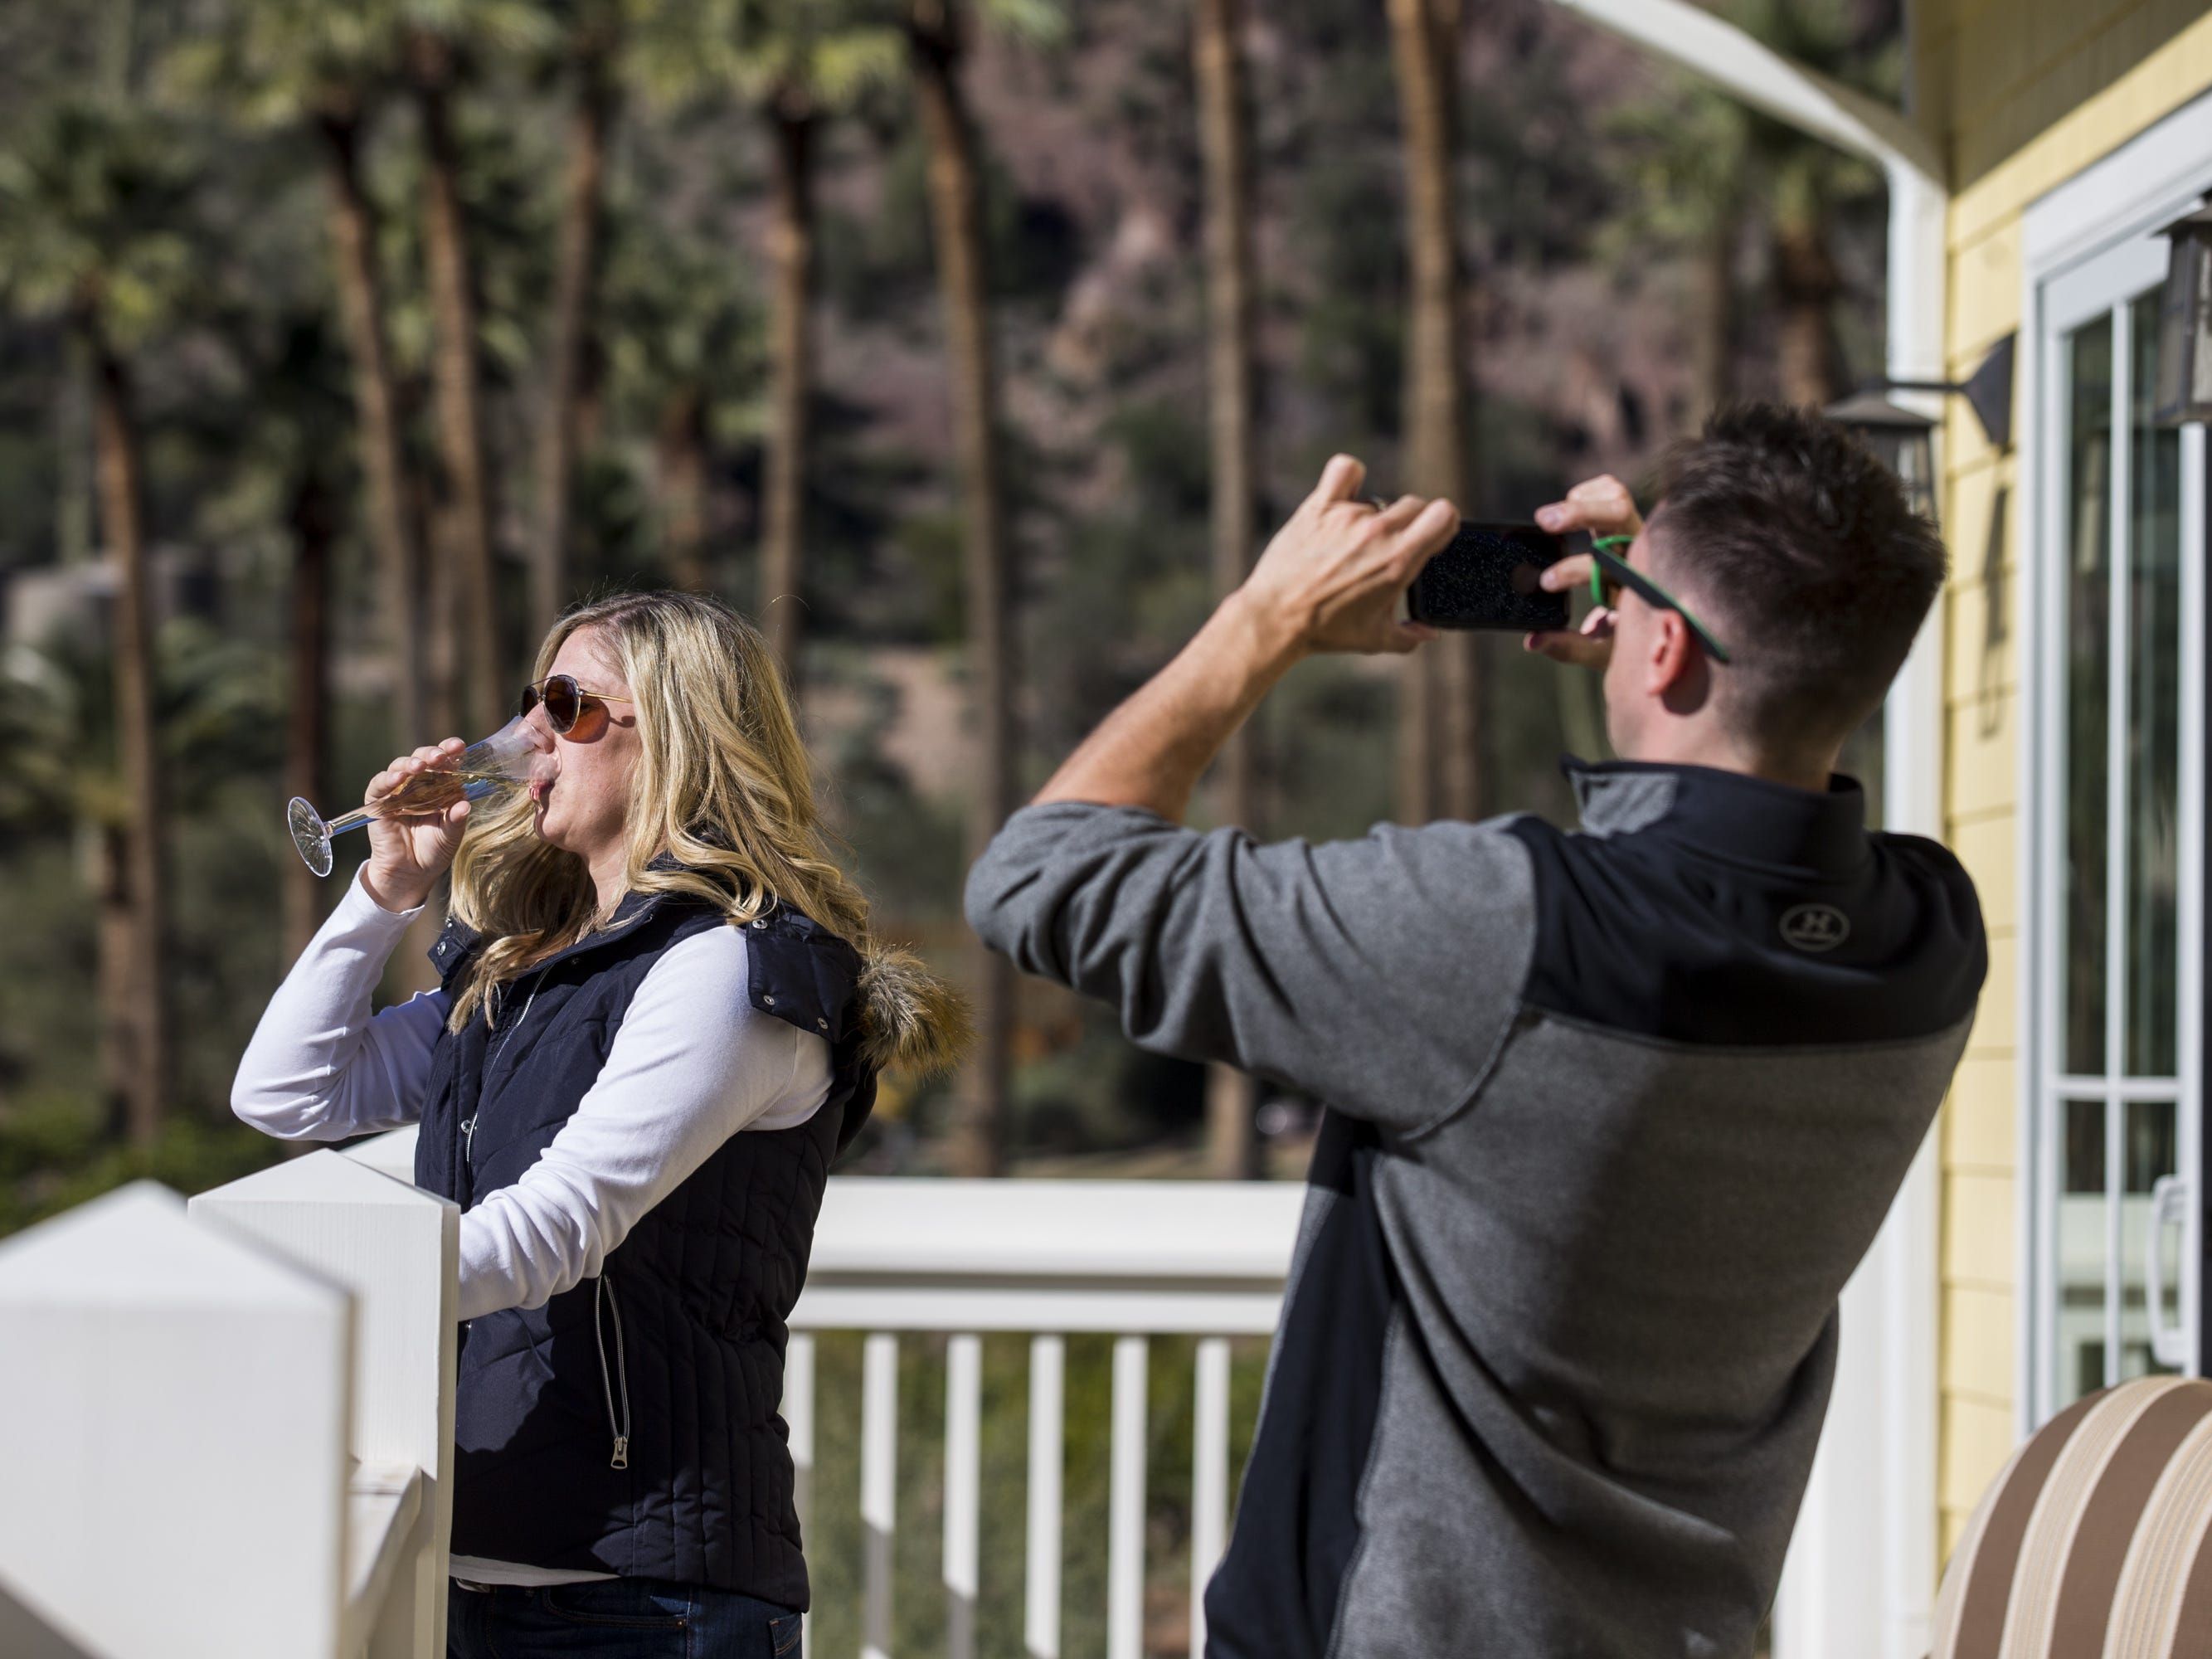 Jason Thiel takes a photo of Jodie Thiel during a private preview of the newly renovated Castle Hot Springs resort on Saturday, Dec. 8, 2018, in Morristown, Ariz. It has been 50 years since the resort has hosted any guests.